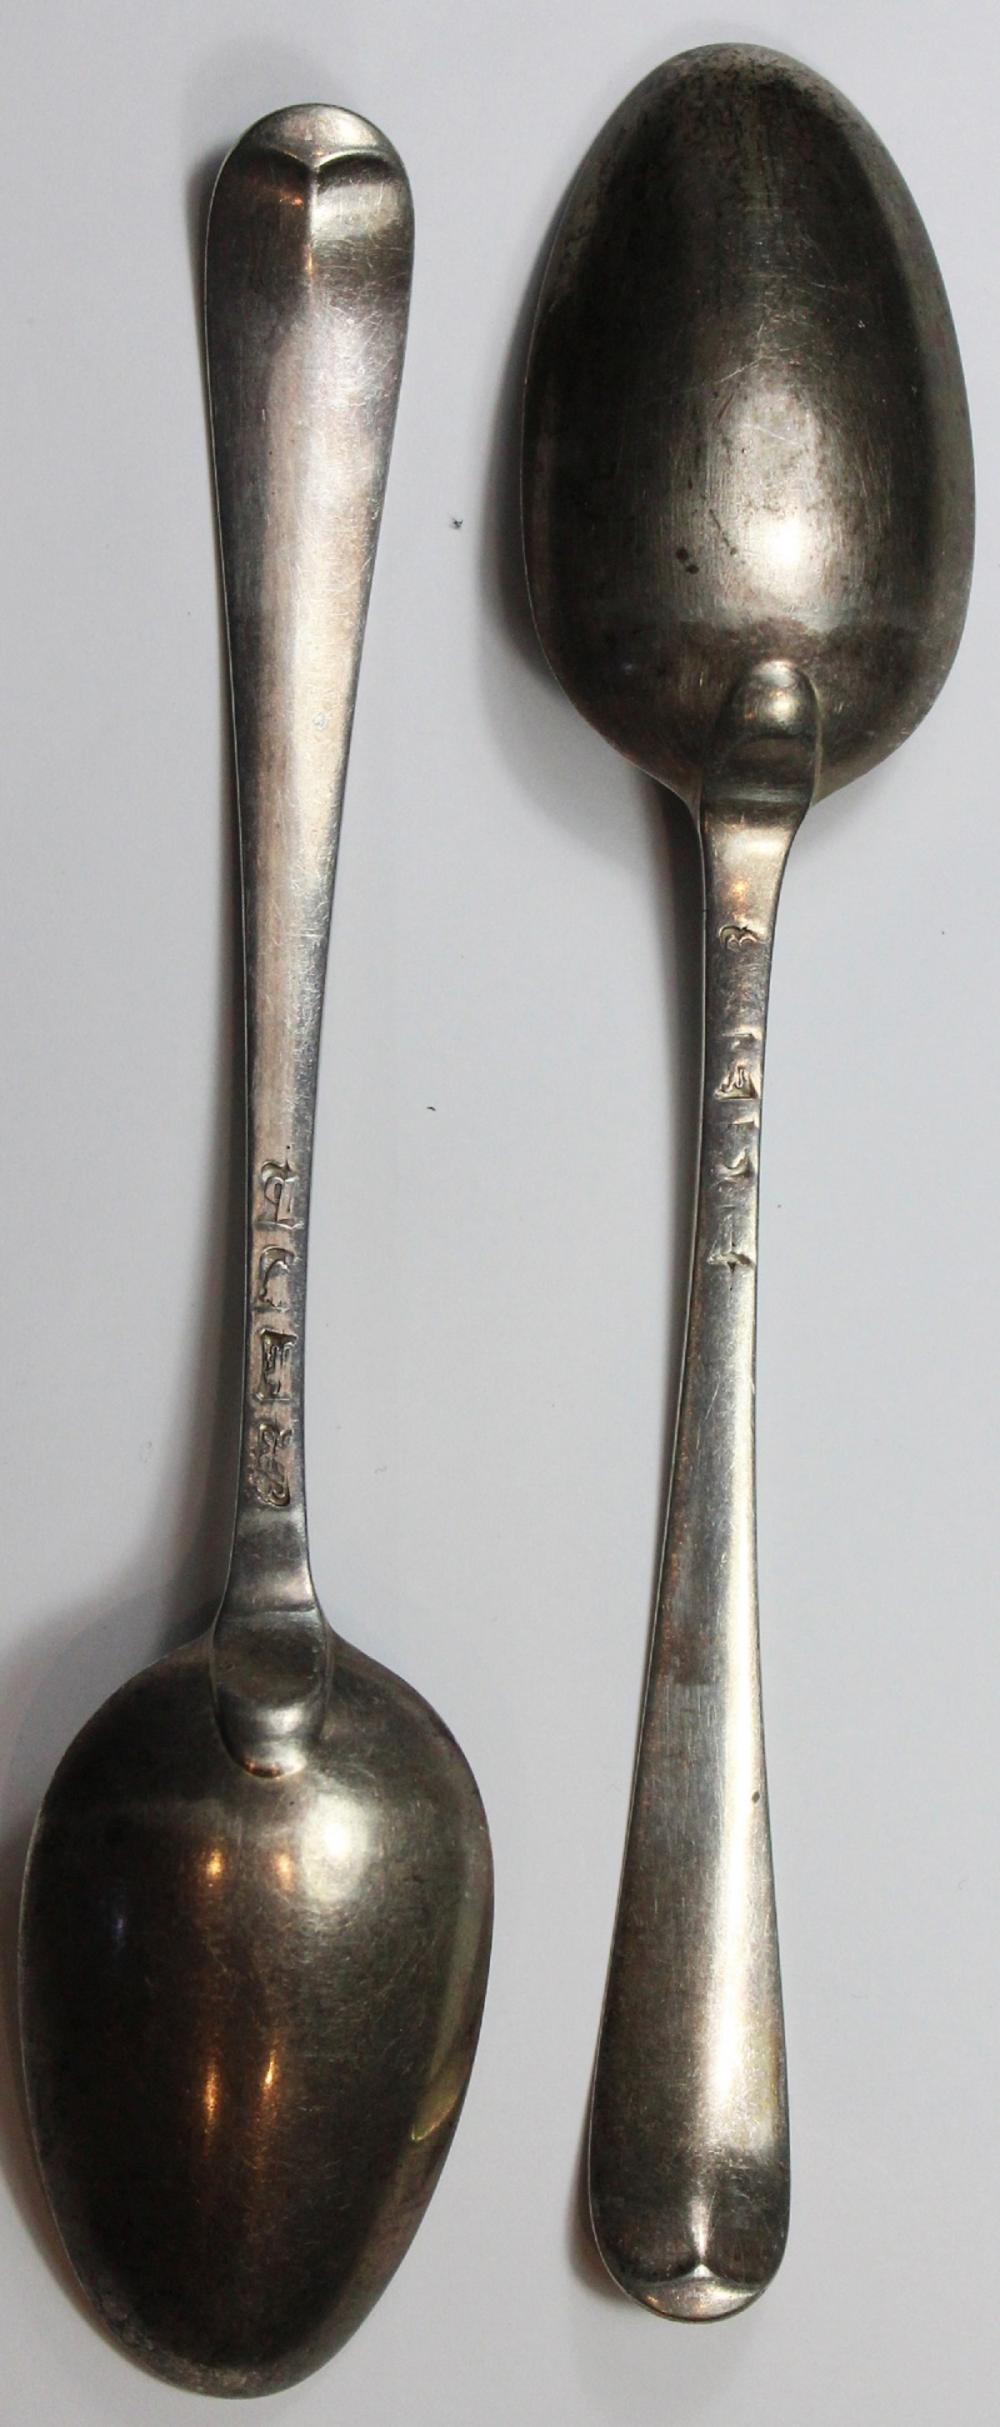 Silver Table Spoons by famous woman silversmith 'Hester Bateman' (Matching Pair)